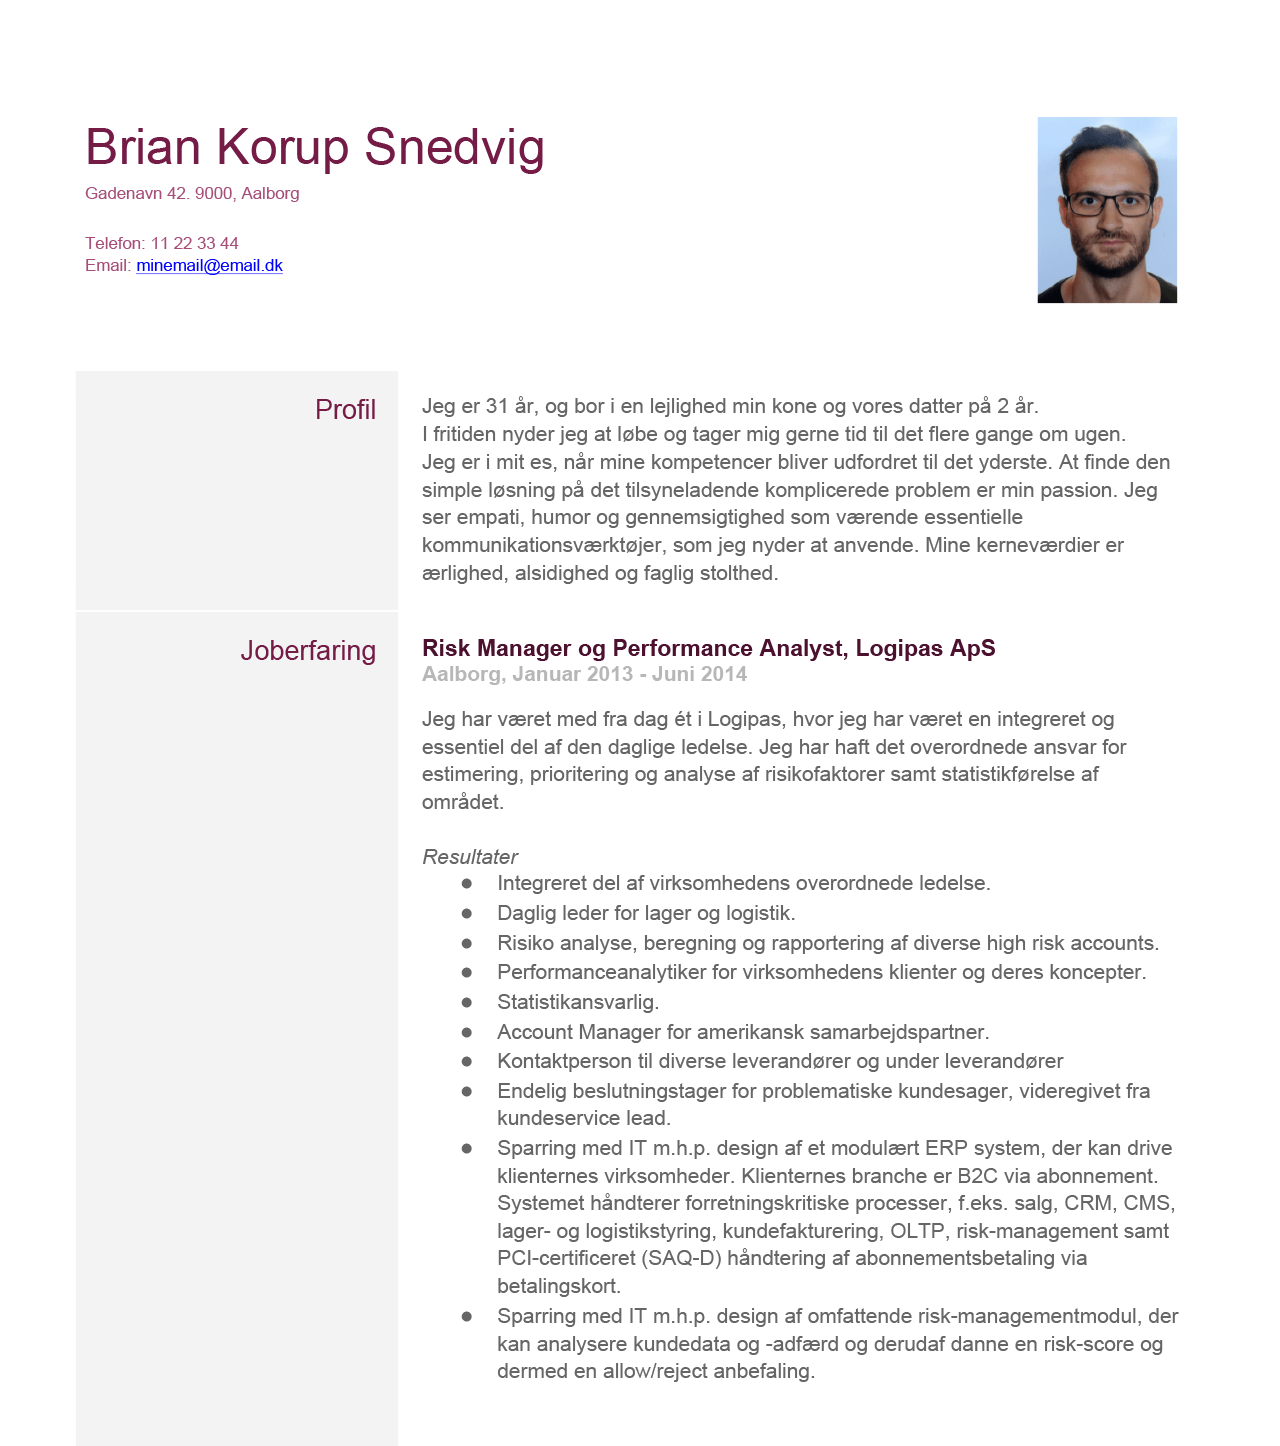 An image snippet of Brian Snedvigs CV from 2014 in Danish